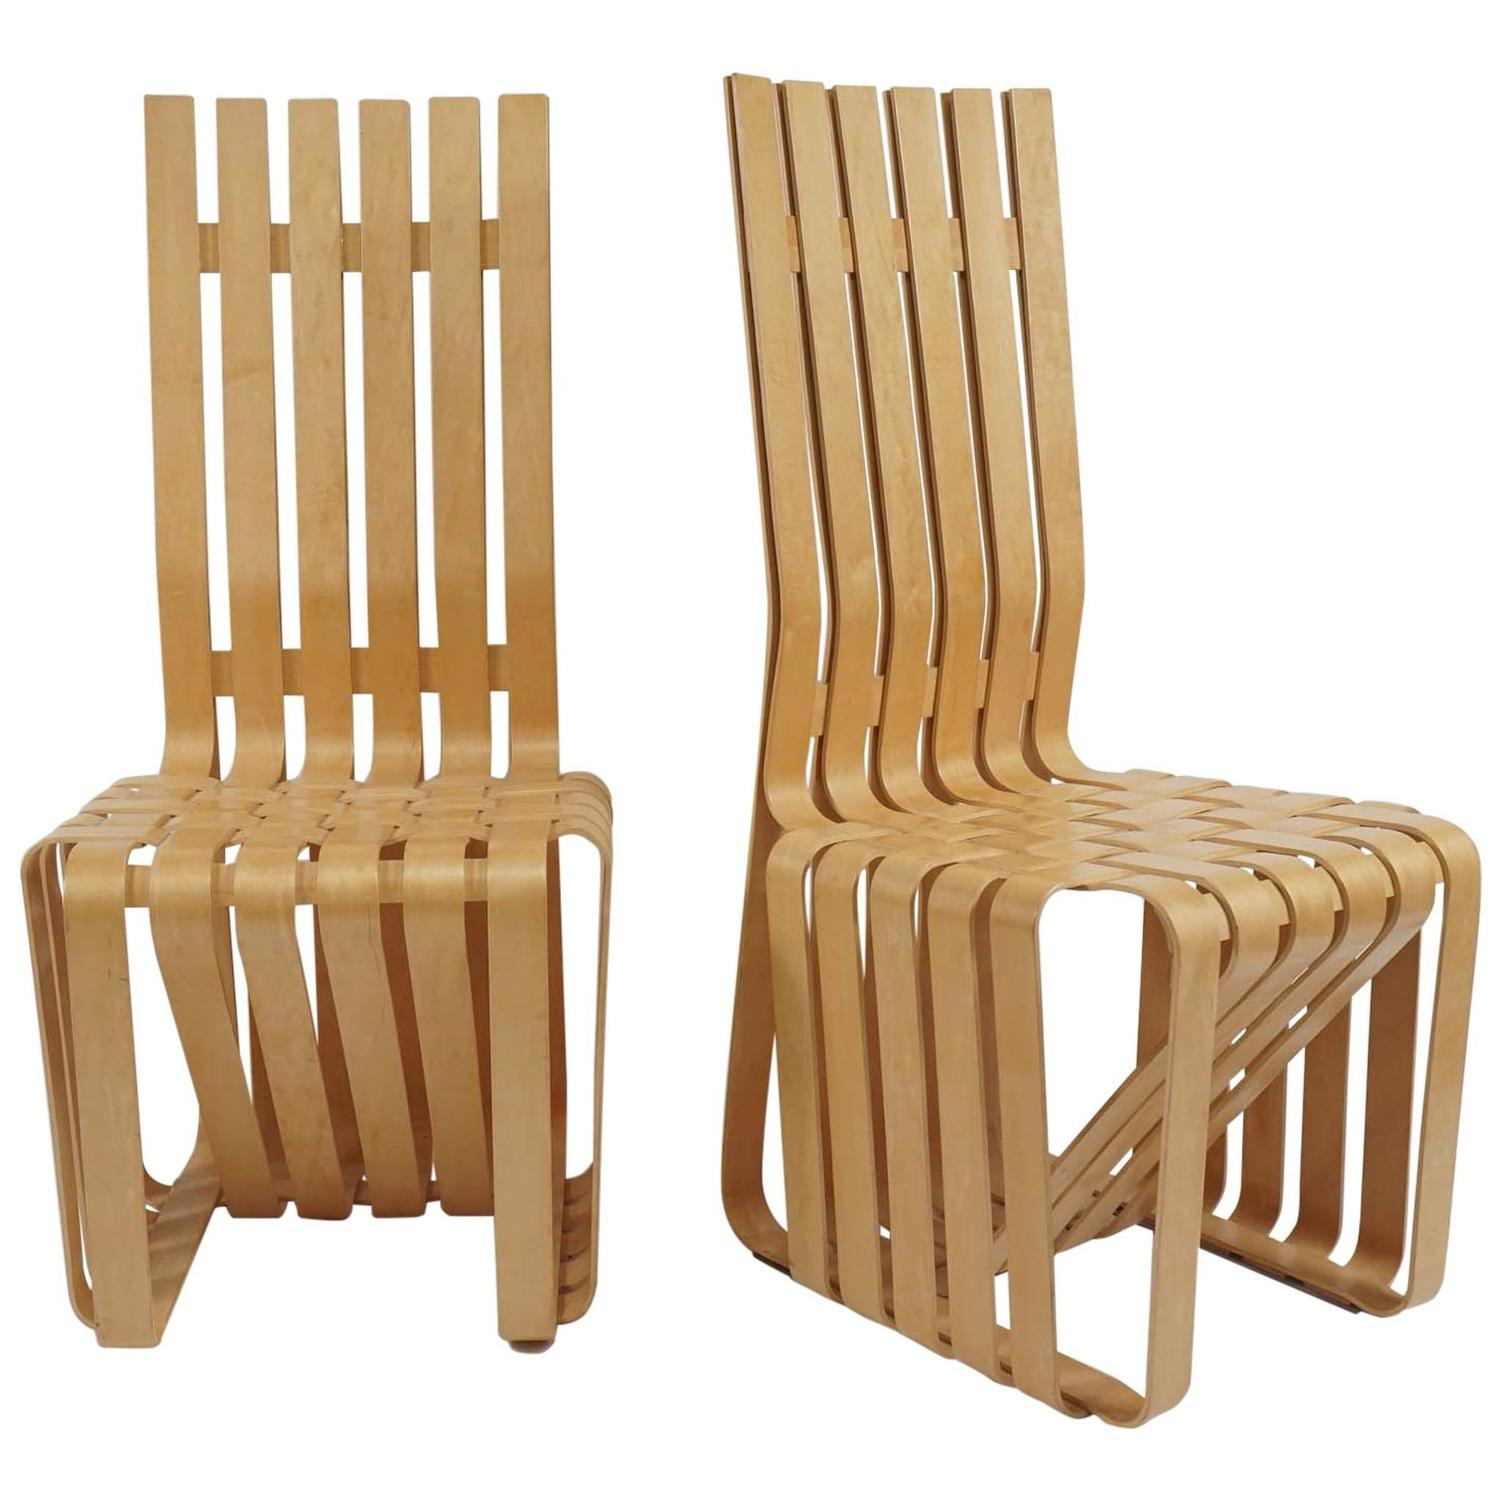 Pair Of Frank Gehry High Sticking Chairs For Sale At Stdibs - Frank gehry furniture